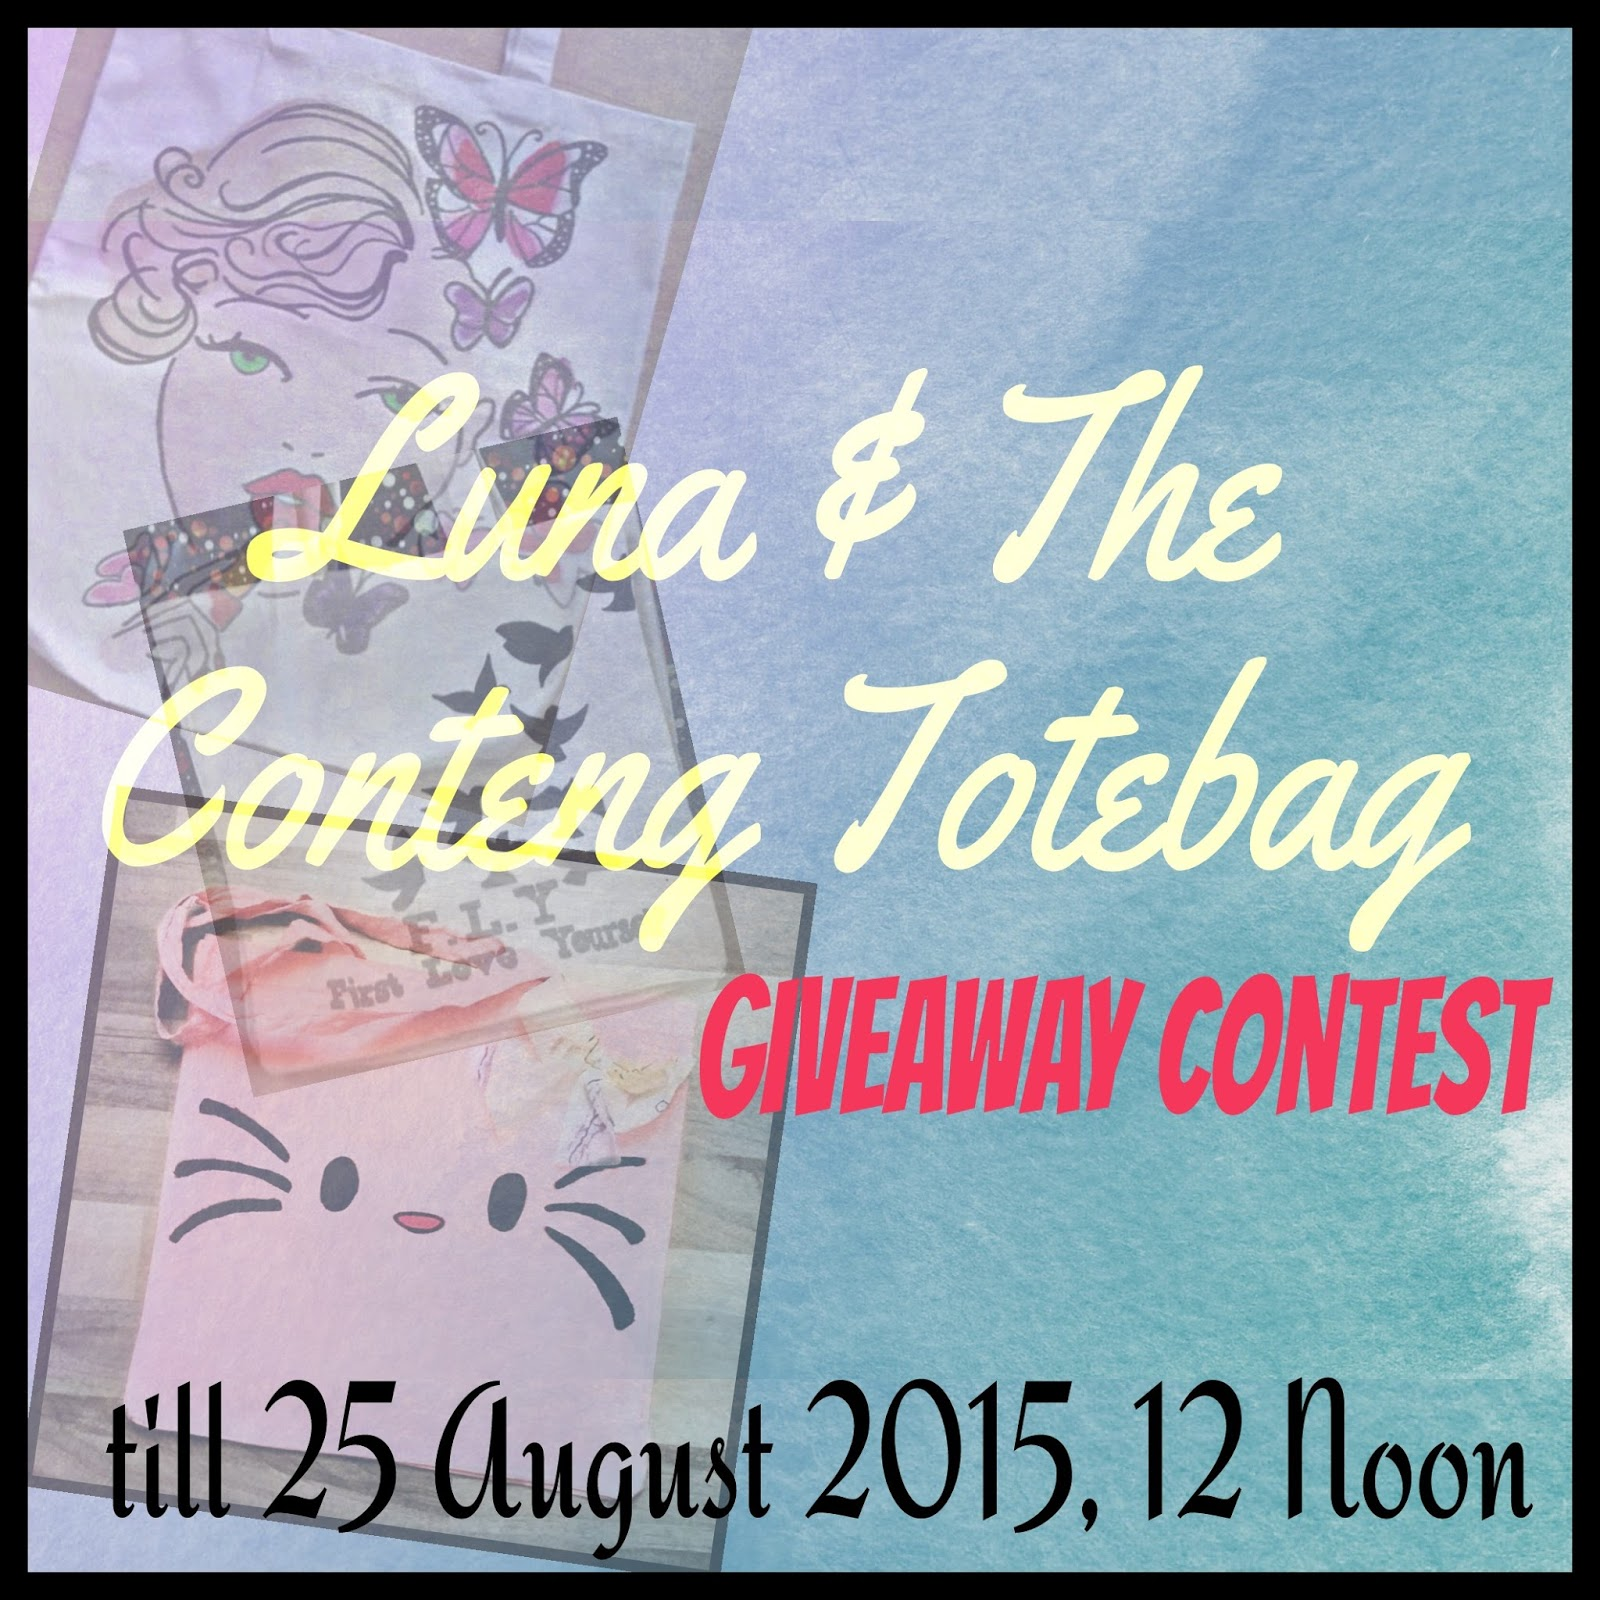 Luna & The Conteng Totebag Giveaway Contest!